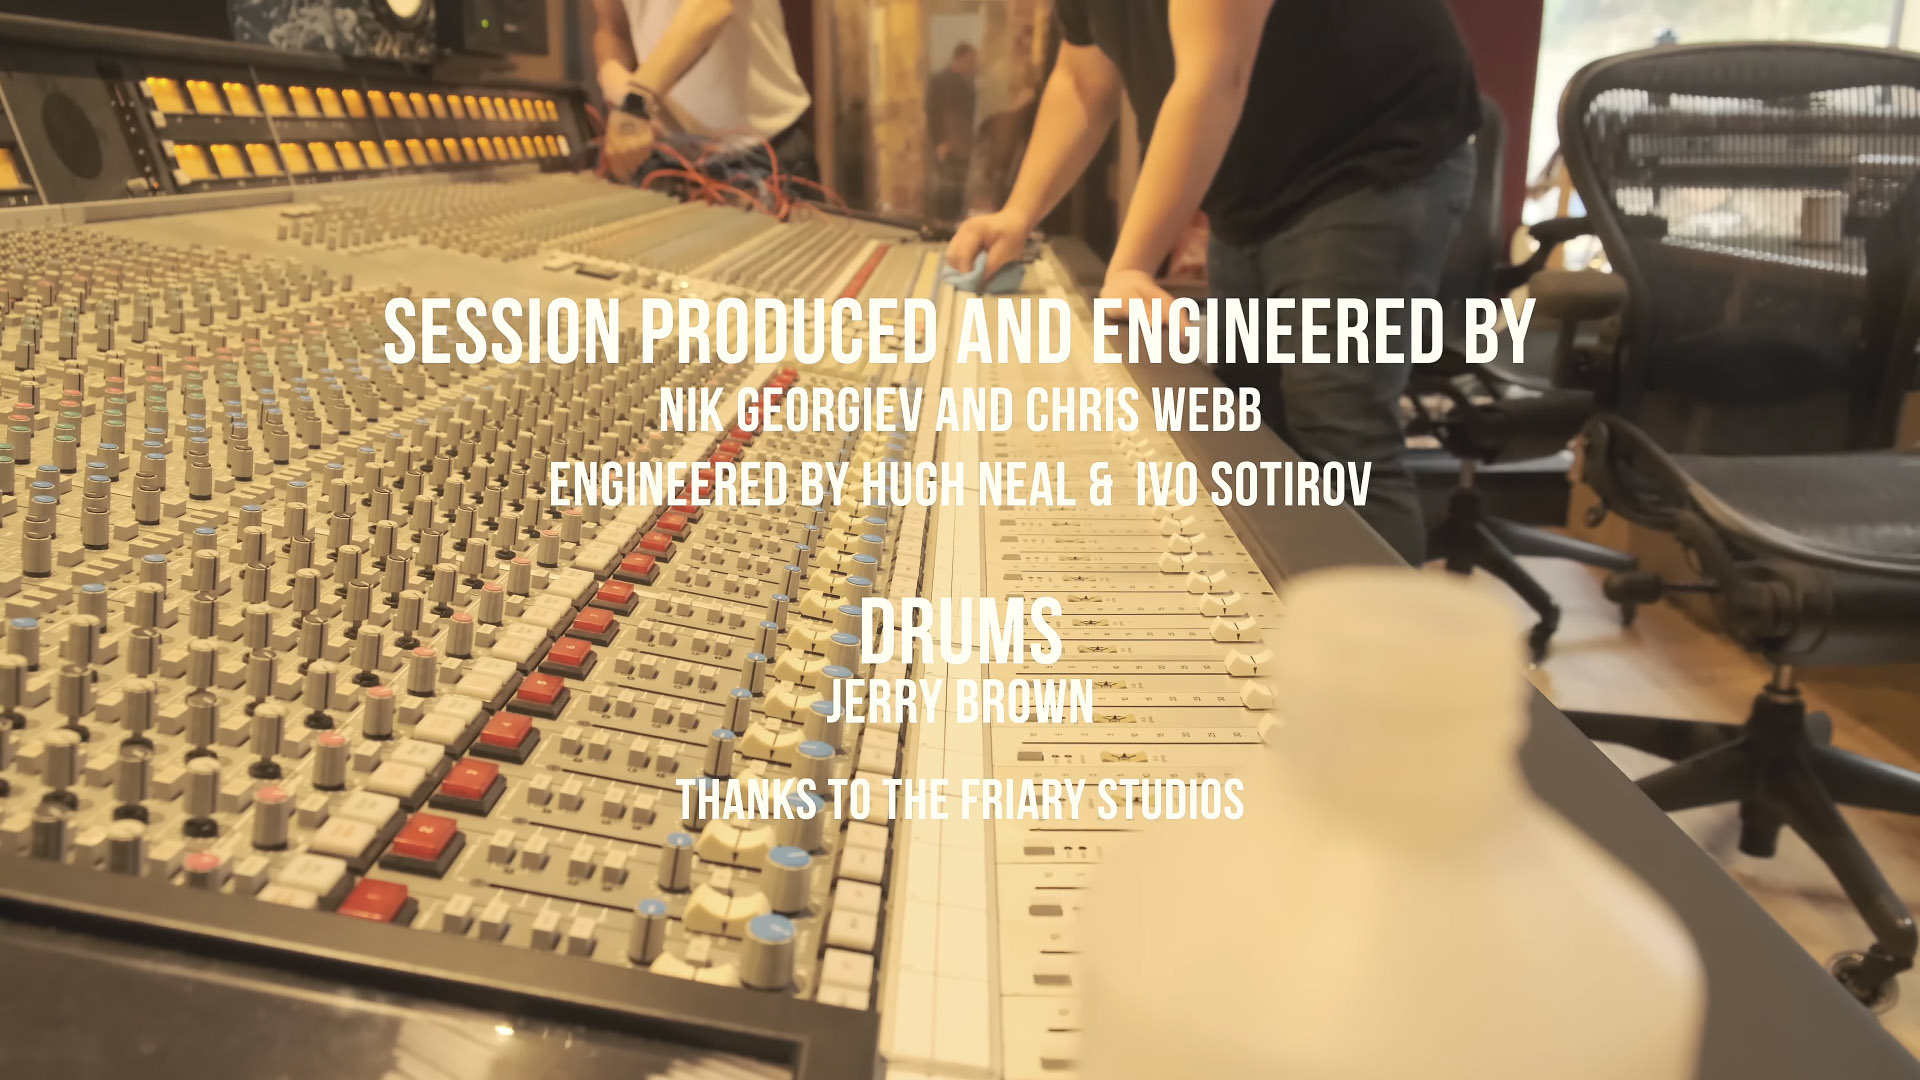 Credits - Drum Session